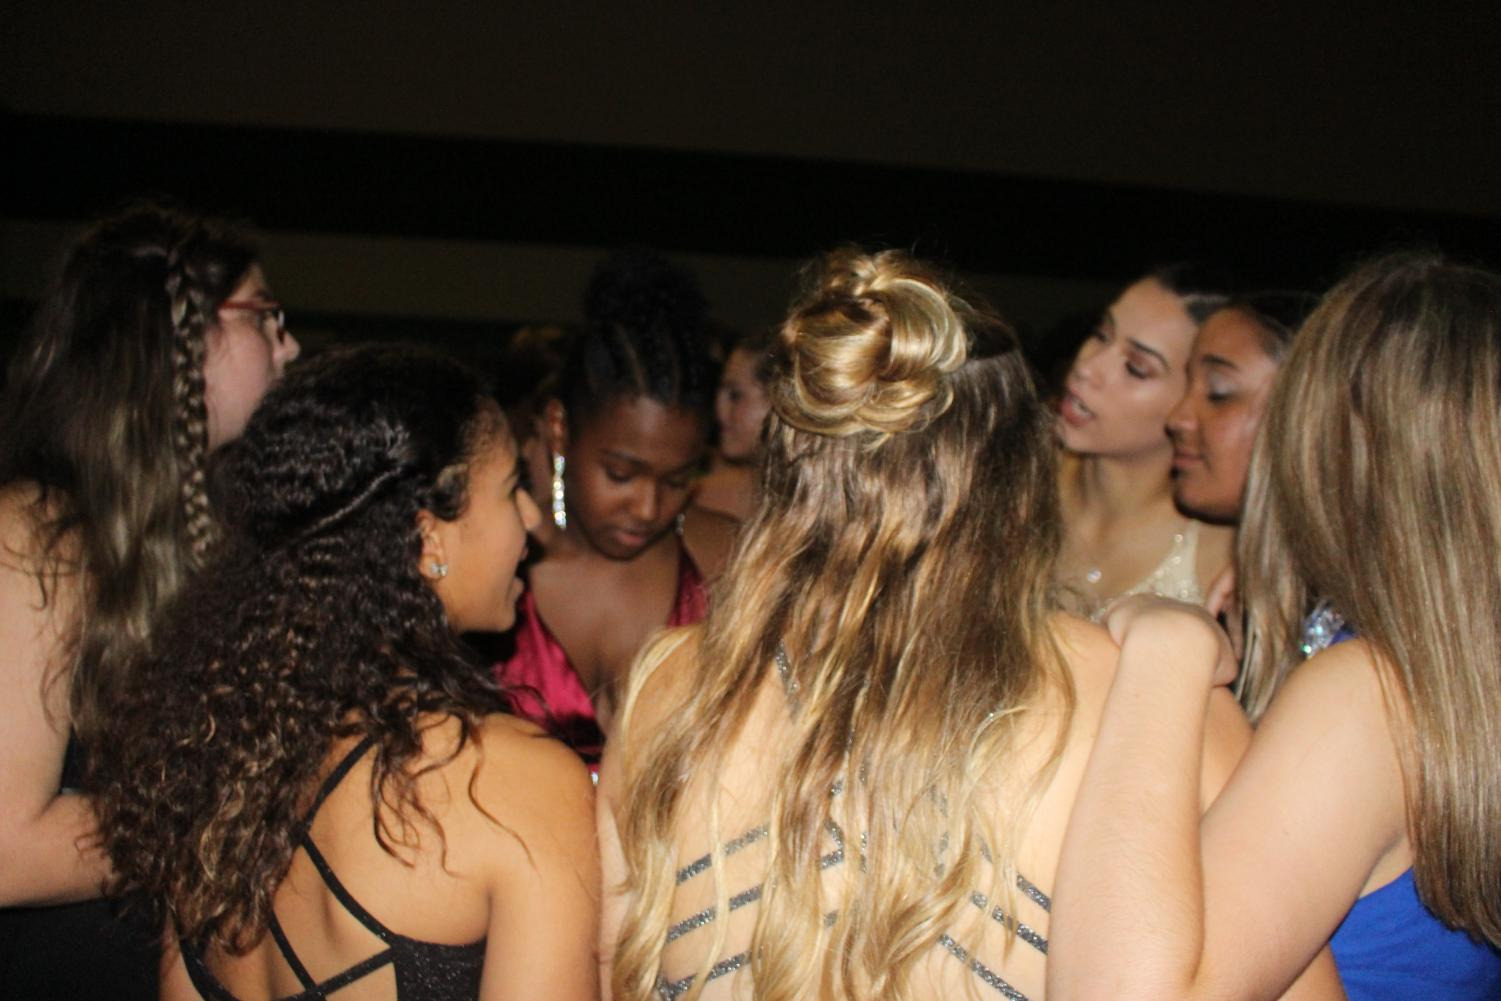 Group+of+girls+dance+together+during+a+slow+song